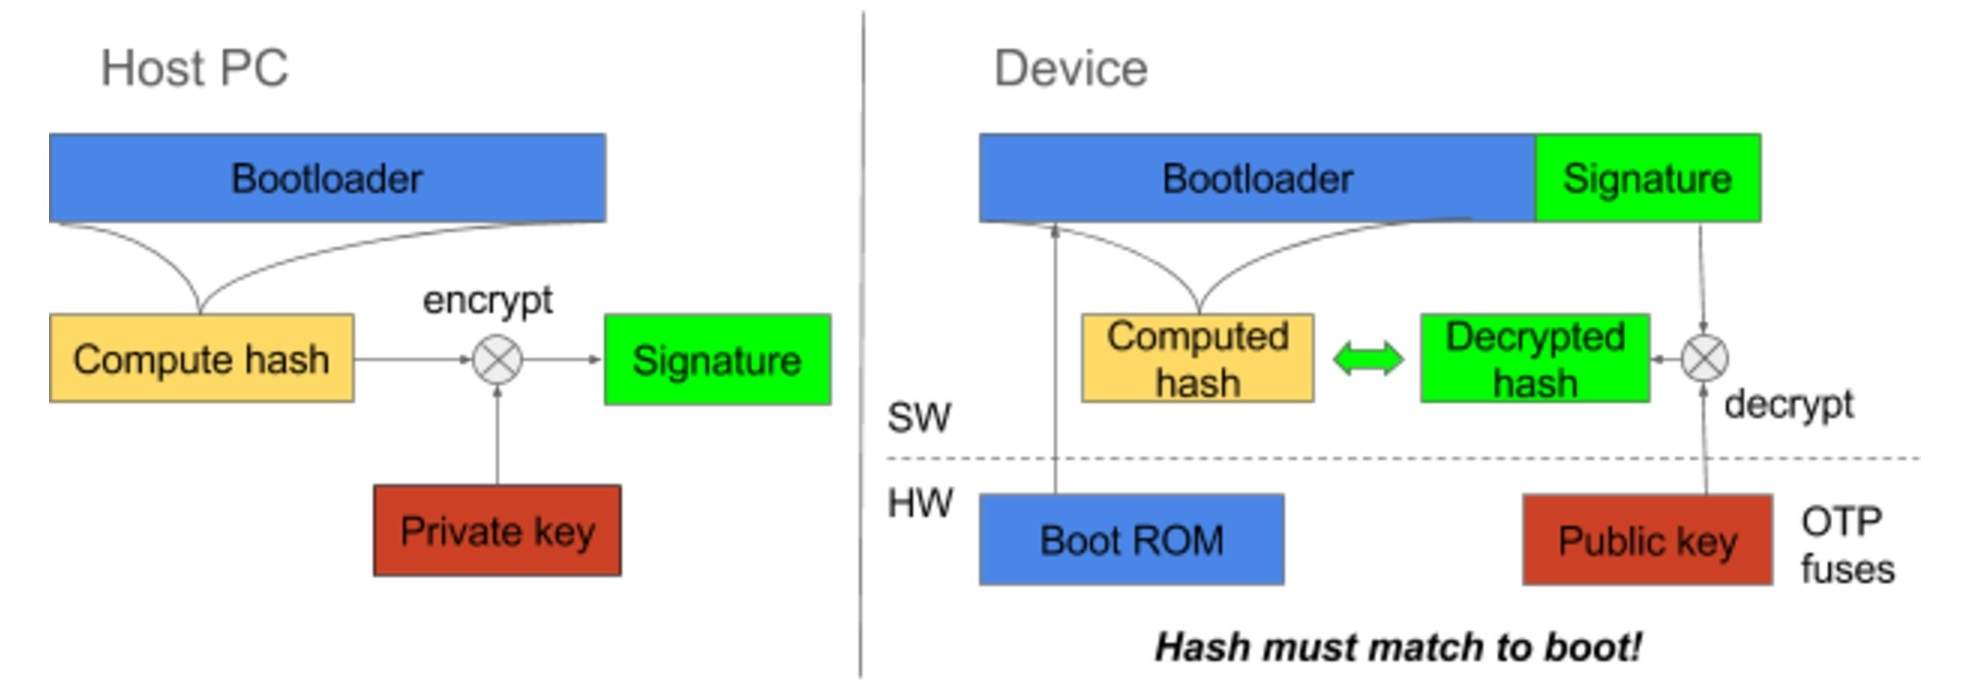 high level overview of bootloader authentication